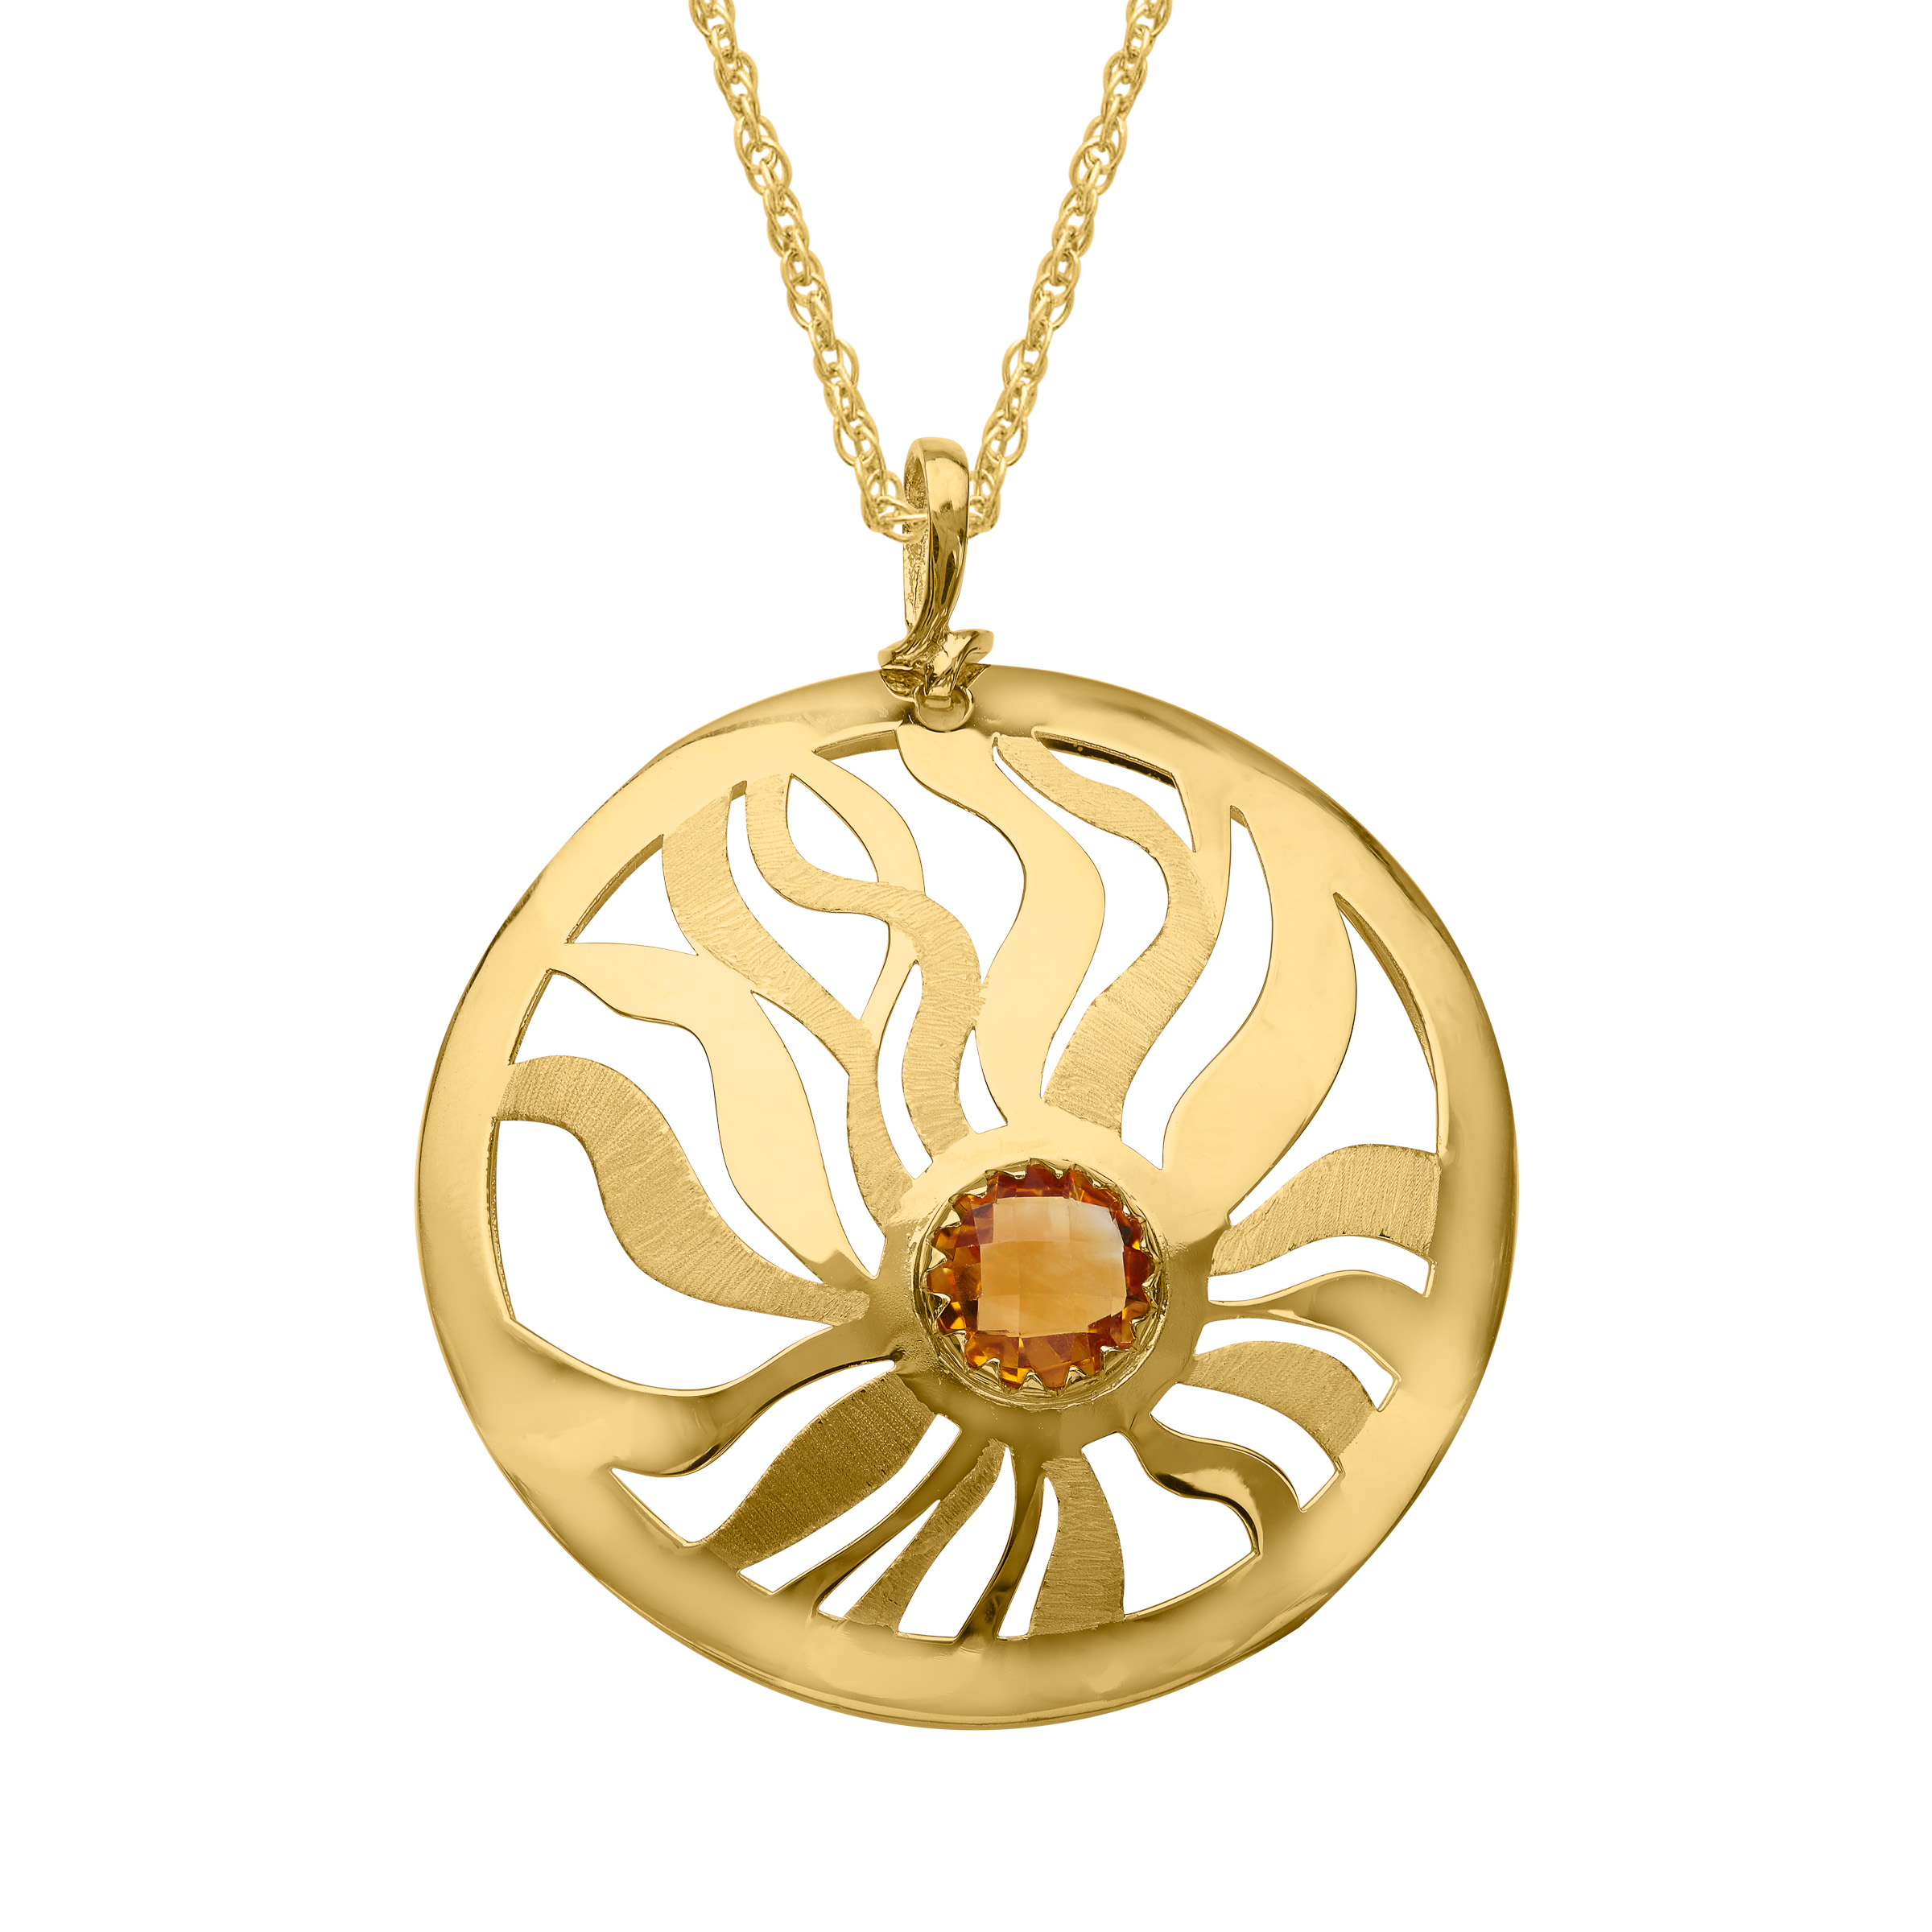 1 3 4 ct Natural Citrine Medallion Pendant Necklace in 14kt Gold by Richline Group